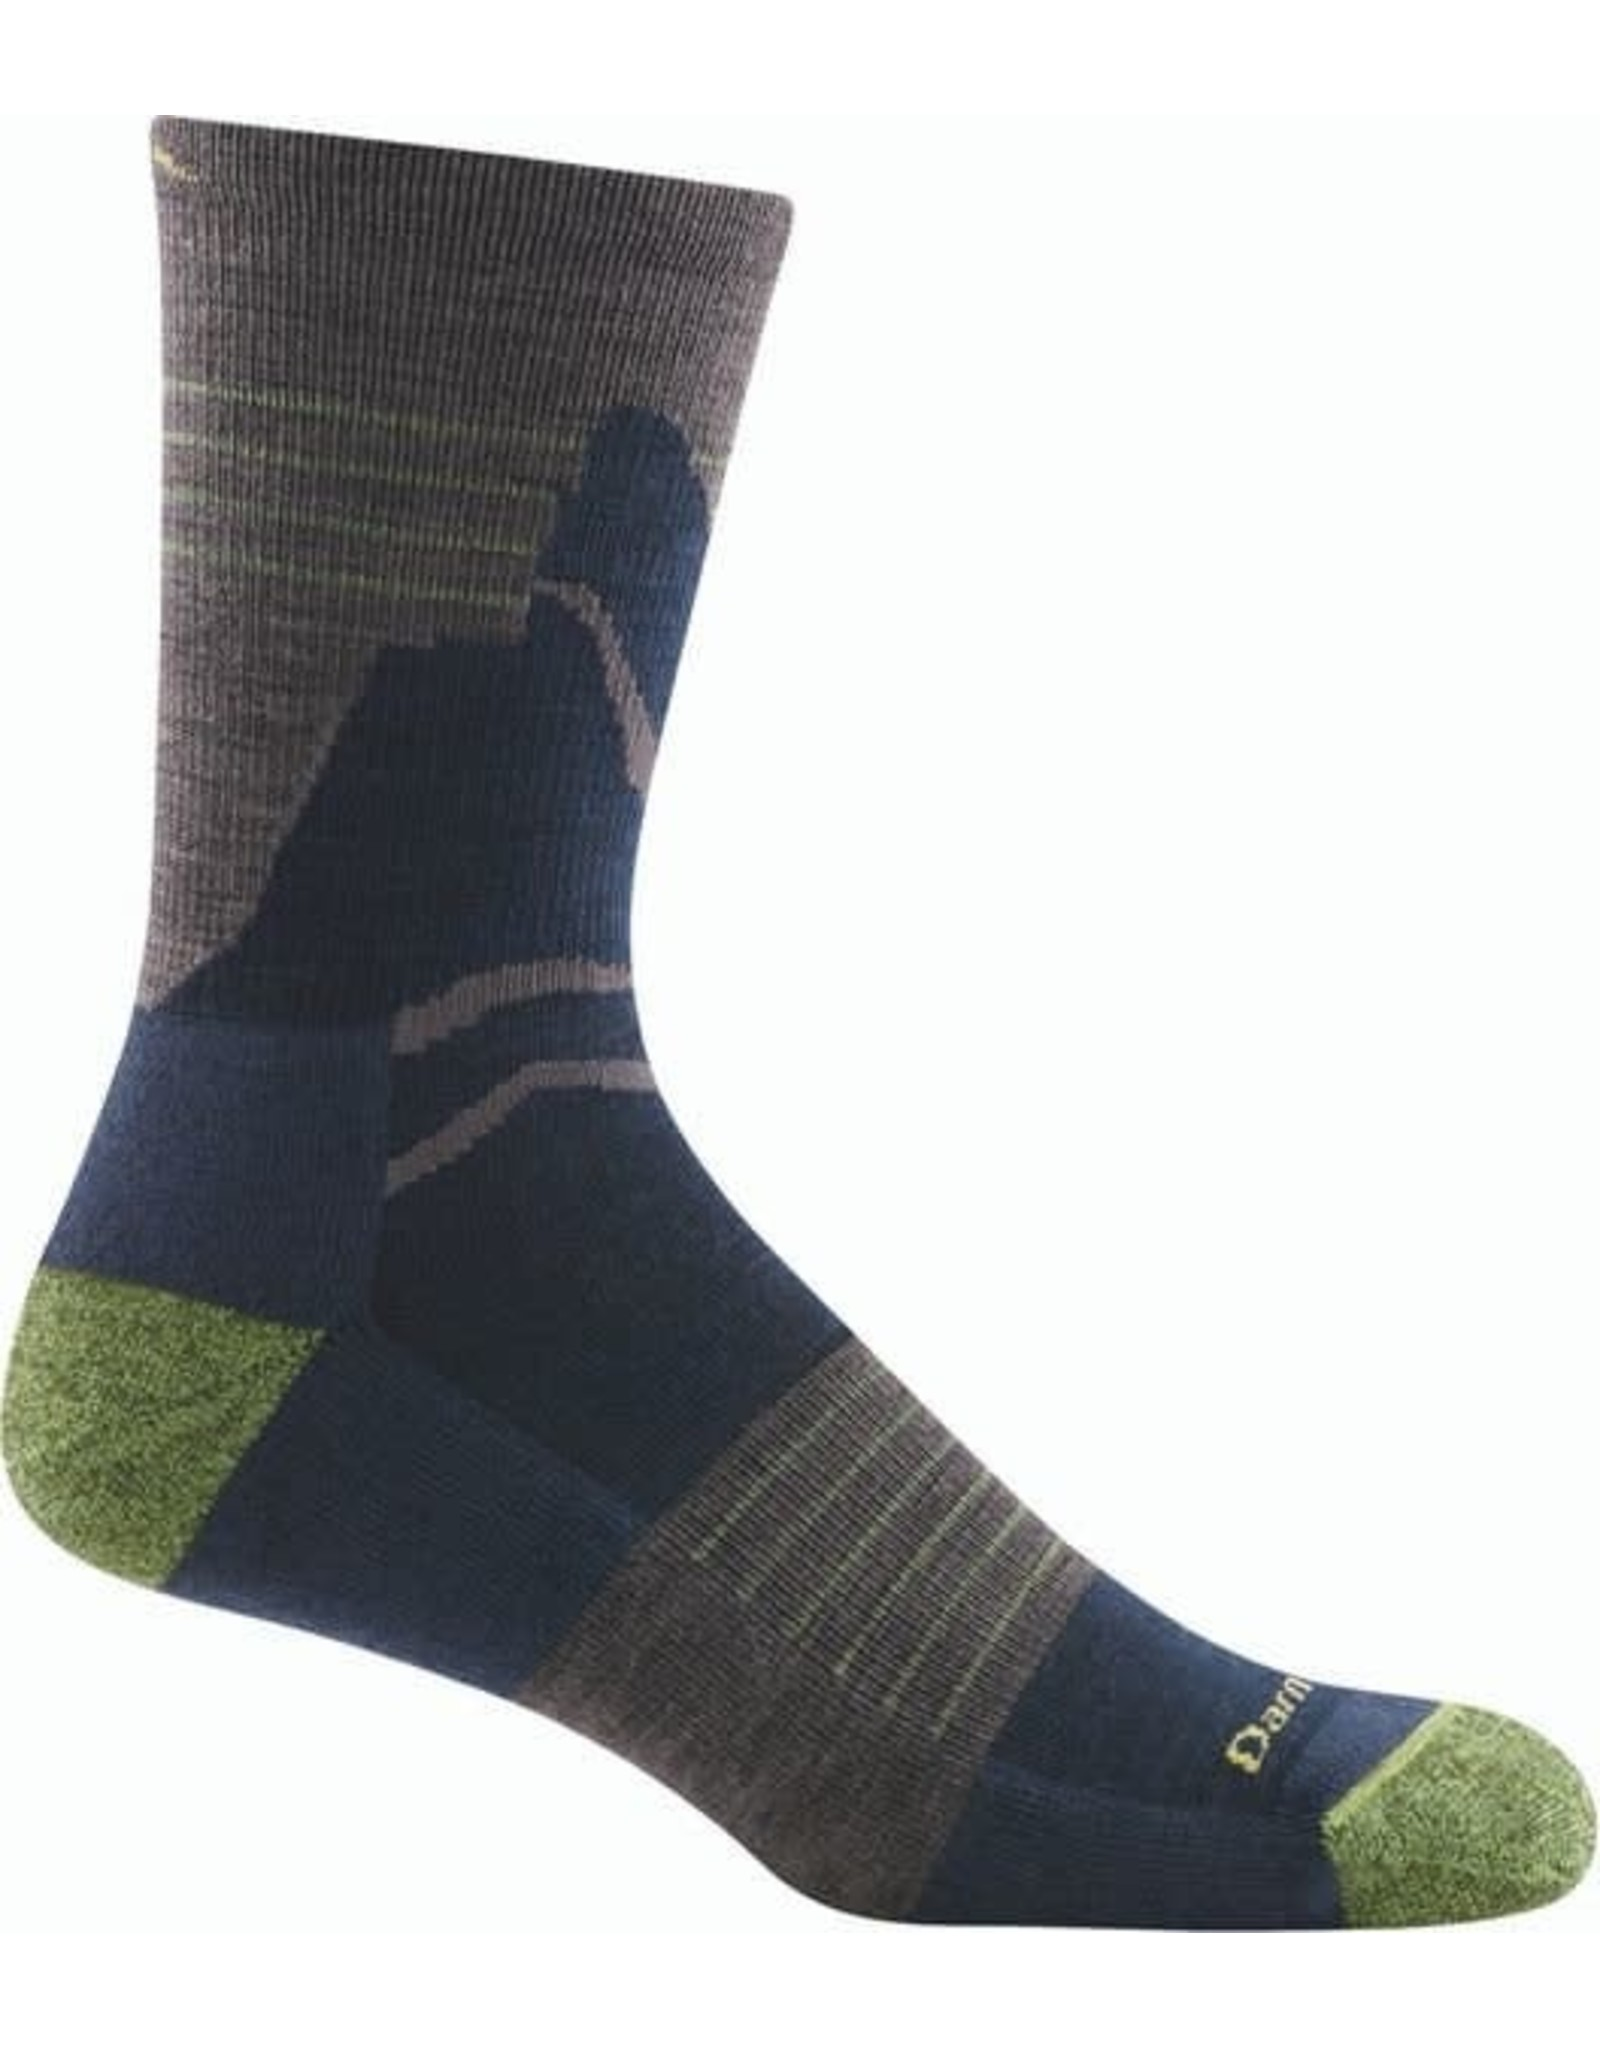 Darn Tough Darn Tough Mens Pinnacle Micro Crew Lighweight with Cushion Sock